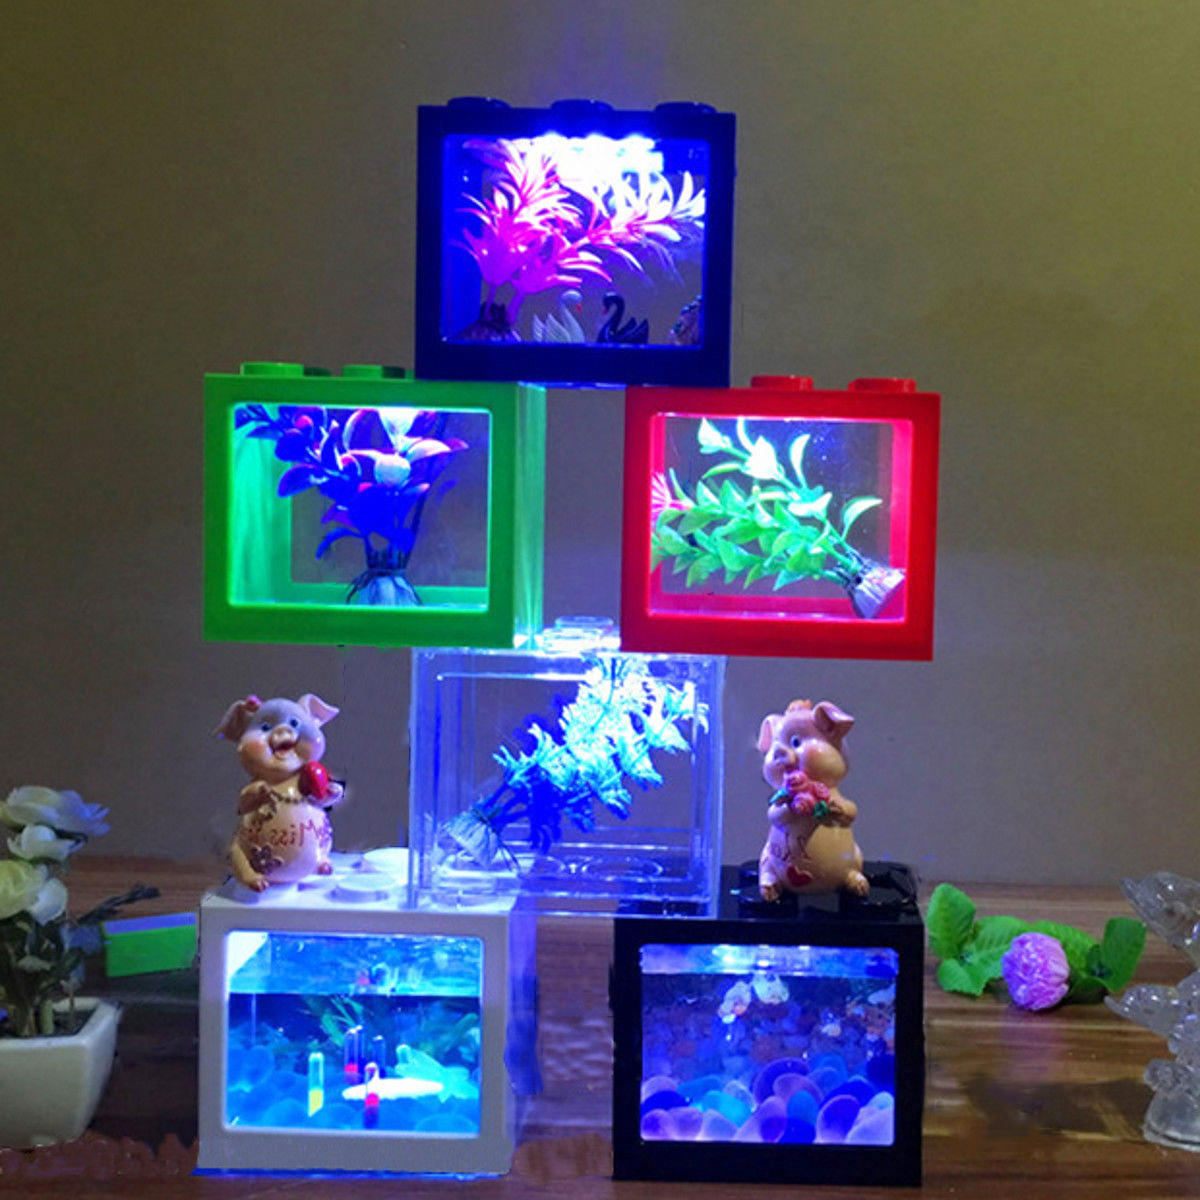 Colorful Clear Mini Fish Tank Aquarium LED Light Office Desktop Ornament Decor - 6